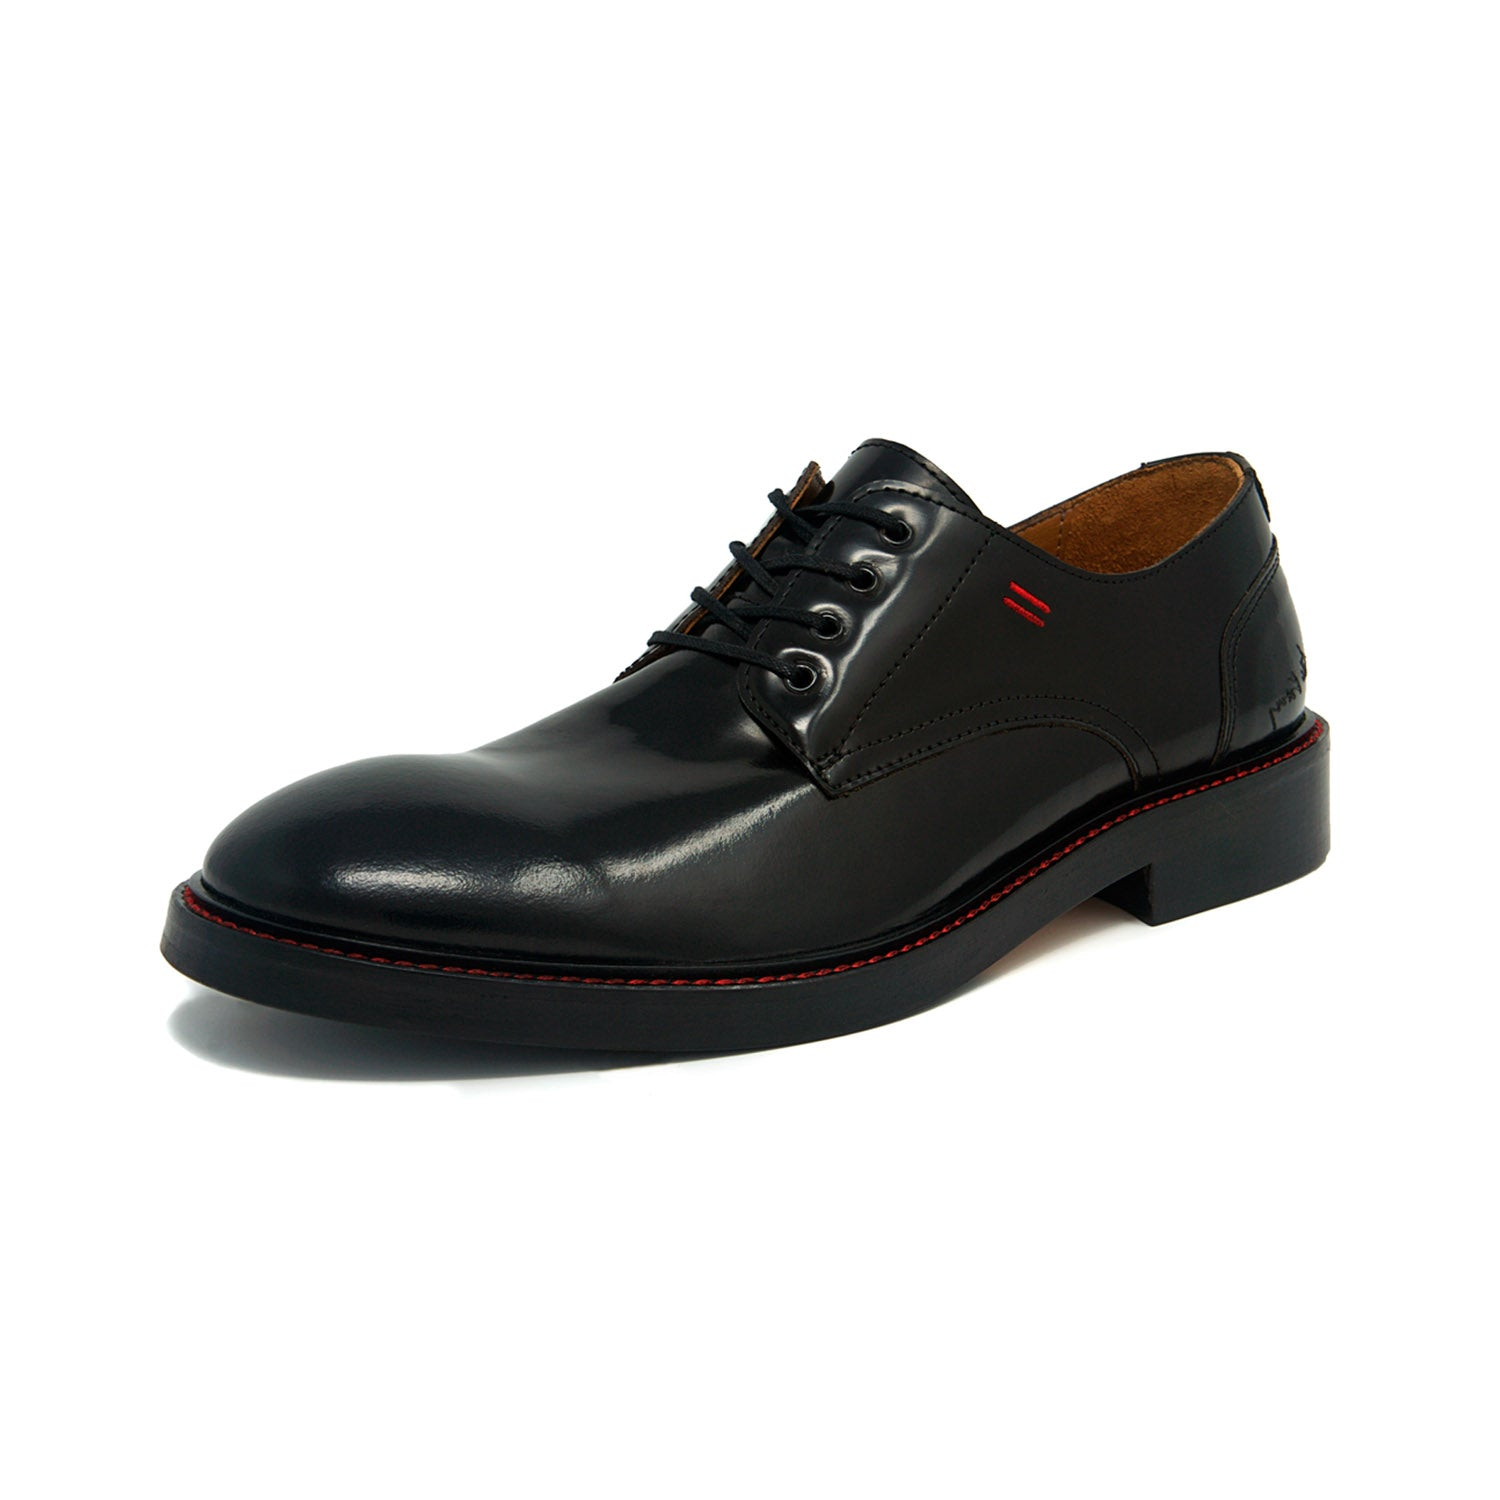 Formal Dress Classic Solid Black Derby's by NiK Kacy, gender-equal footwear going beyond the binary